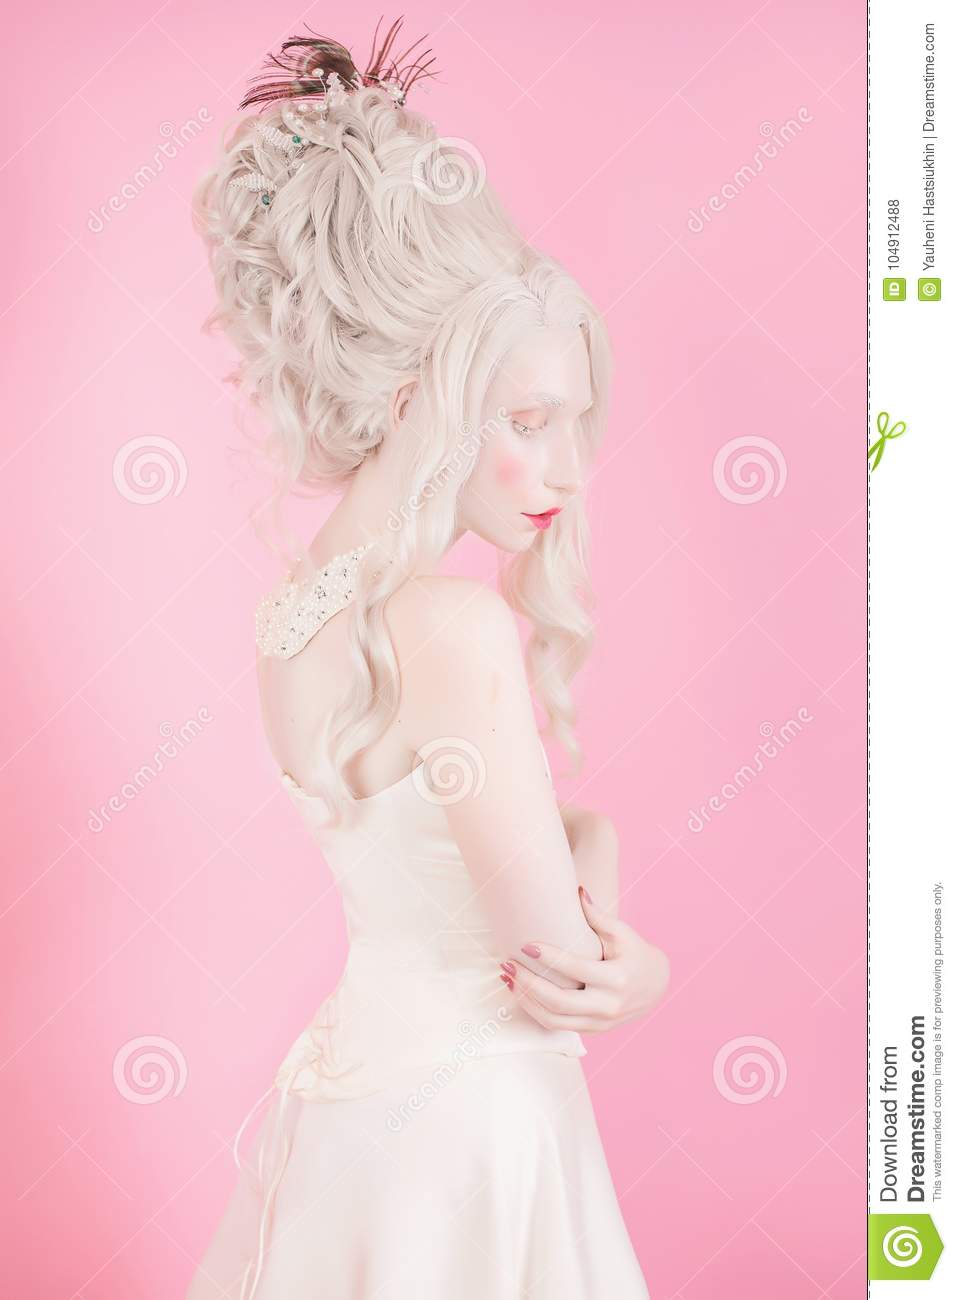 Blonde woman with beautiful luxurious rococo hair style